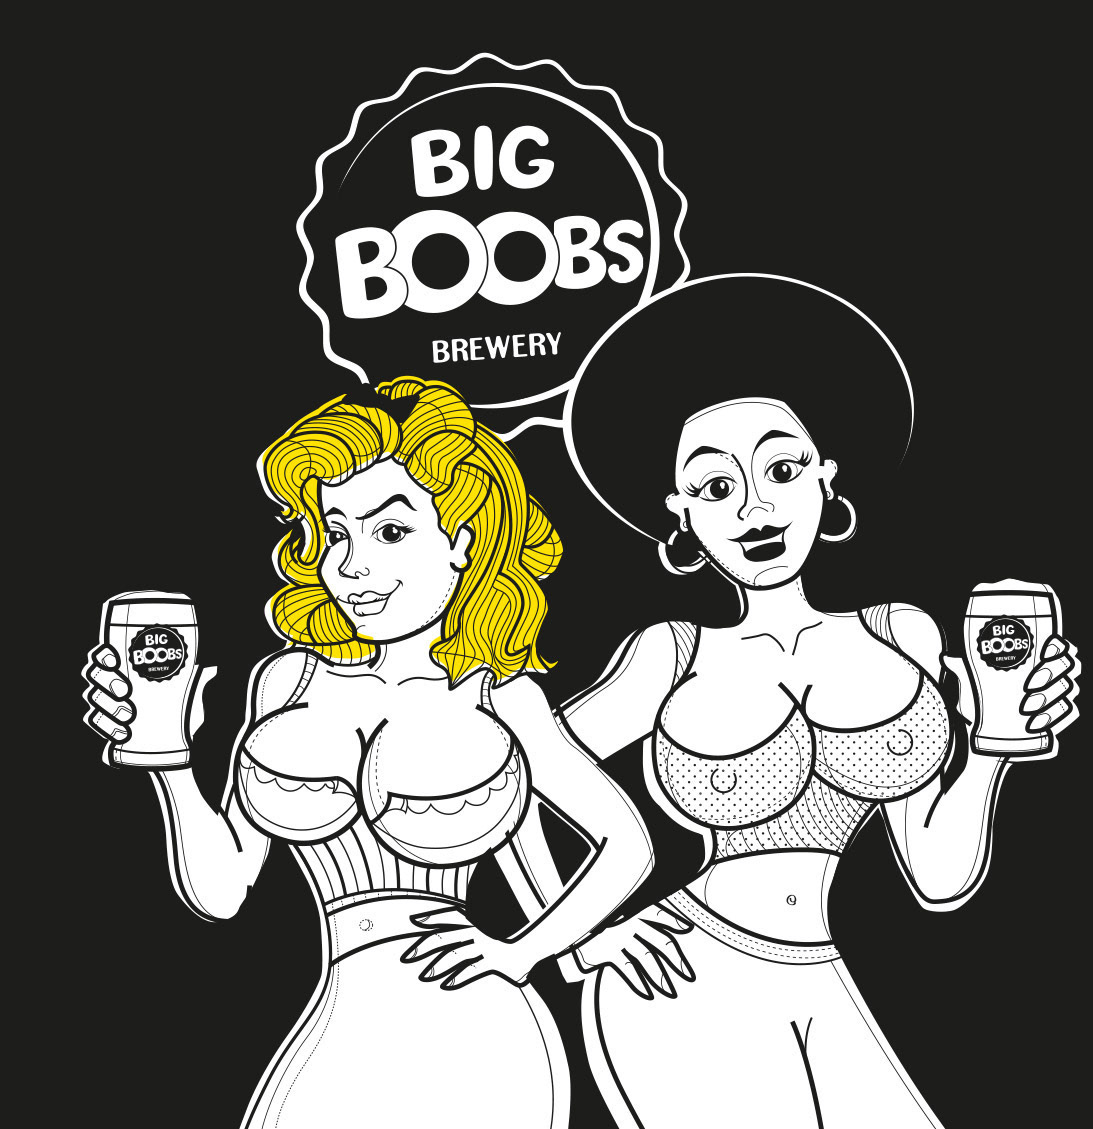 BIG BOOBS Brewery